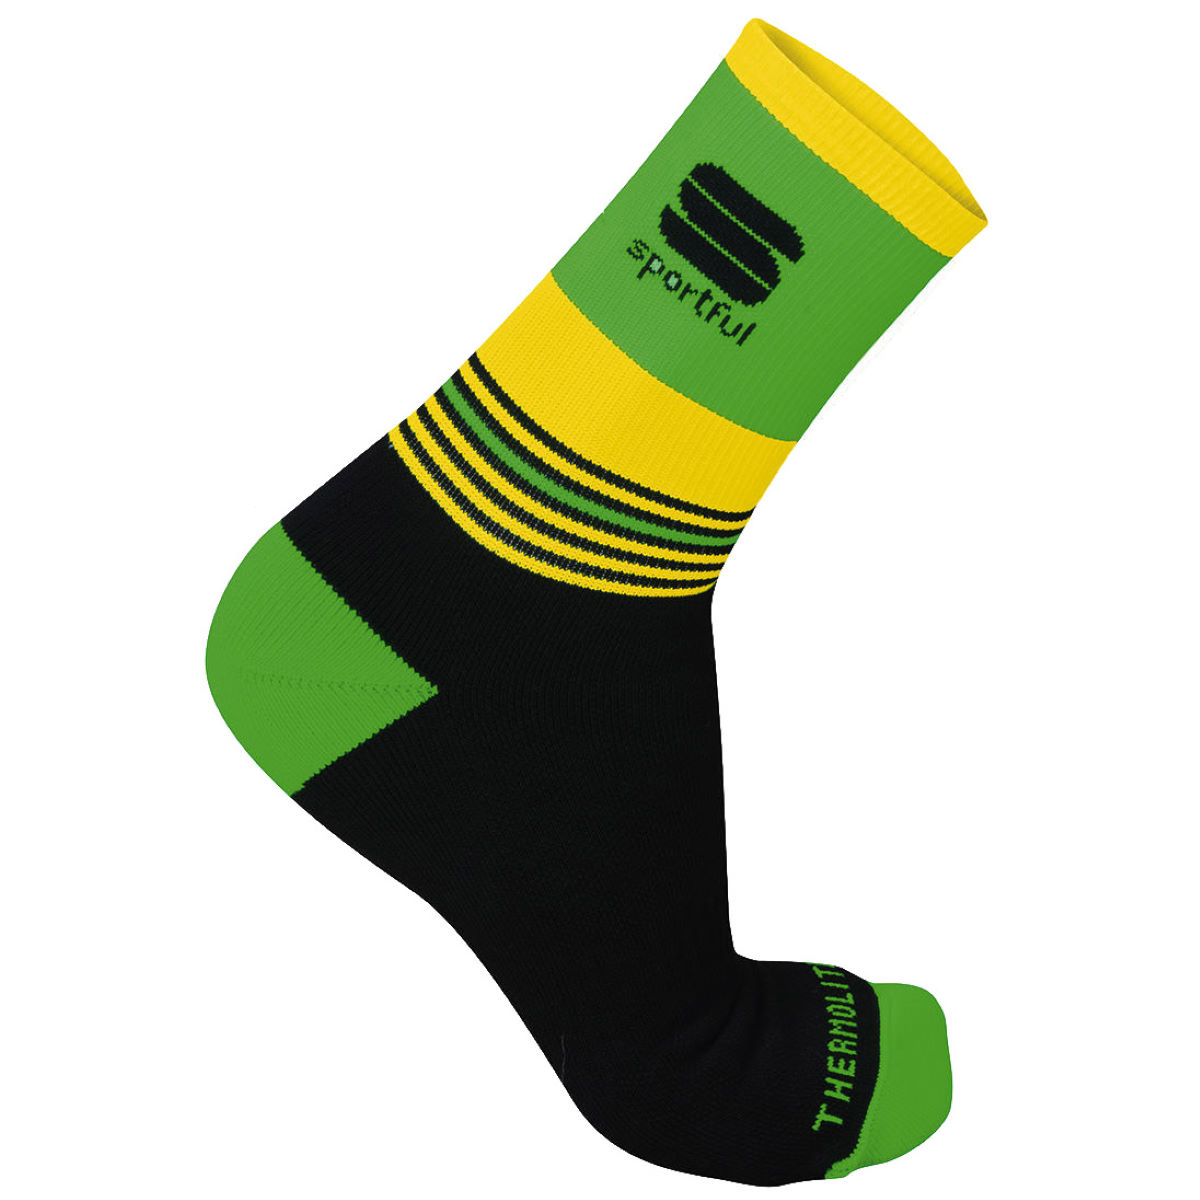 Image of Chaussettes Sportful Arctic 13 - S Black/Green Fluo   Chaussettes